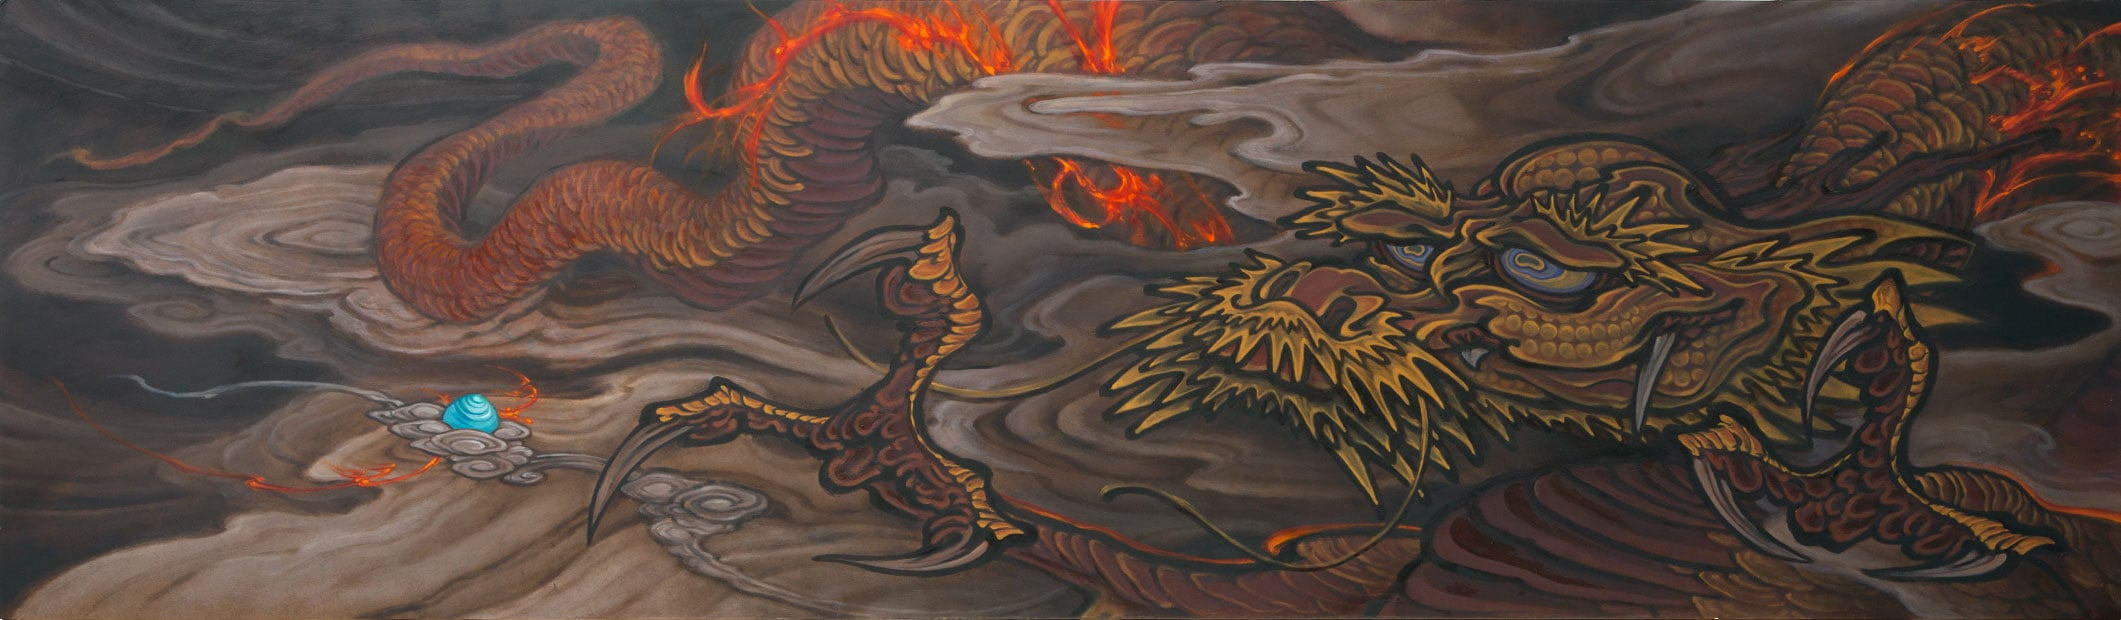 """Untitled (Golden Dragon and Pearl) . 2014 - oil on masonite. 27.5"""" x 96""""."""